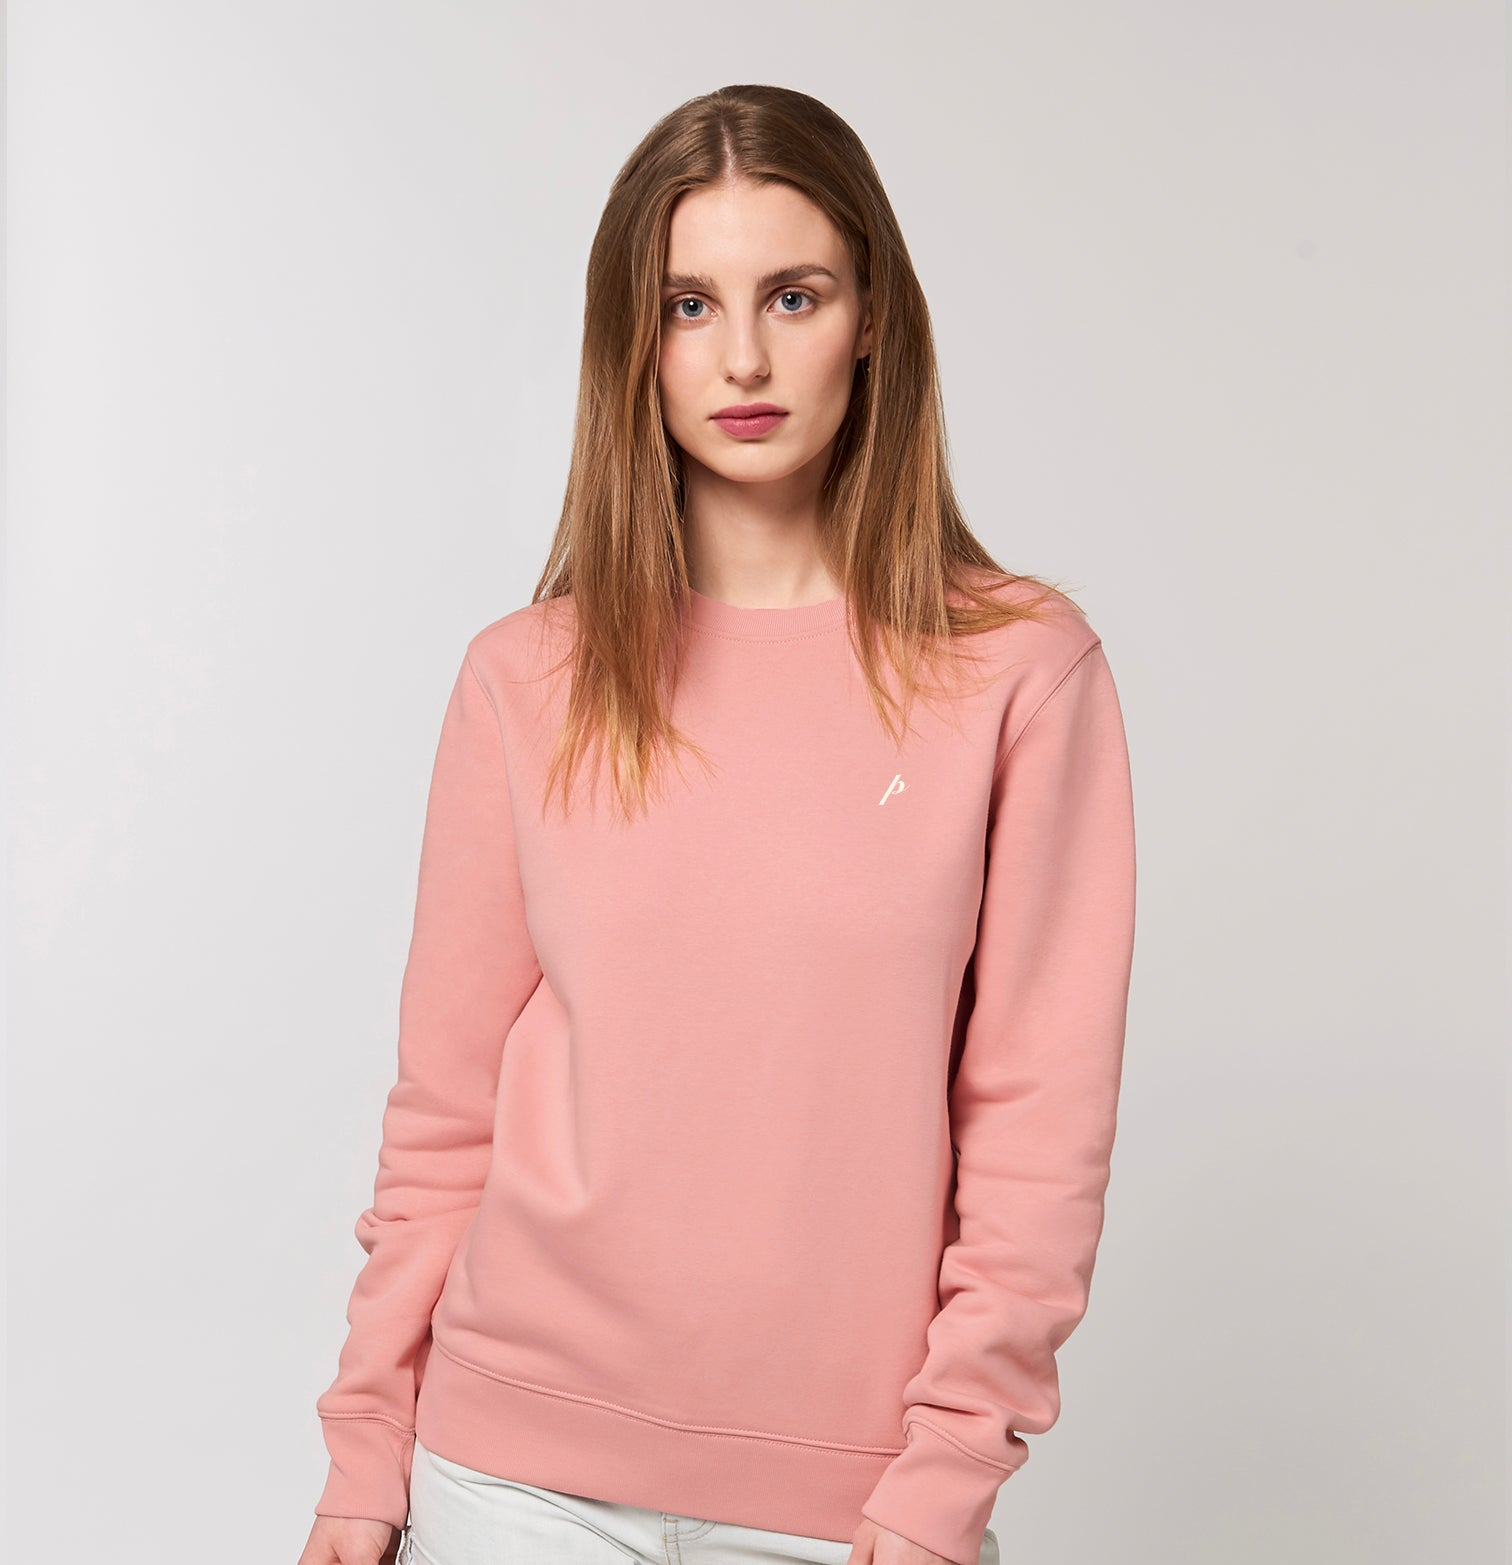 PINK ICONIC P SWEATER